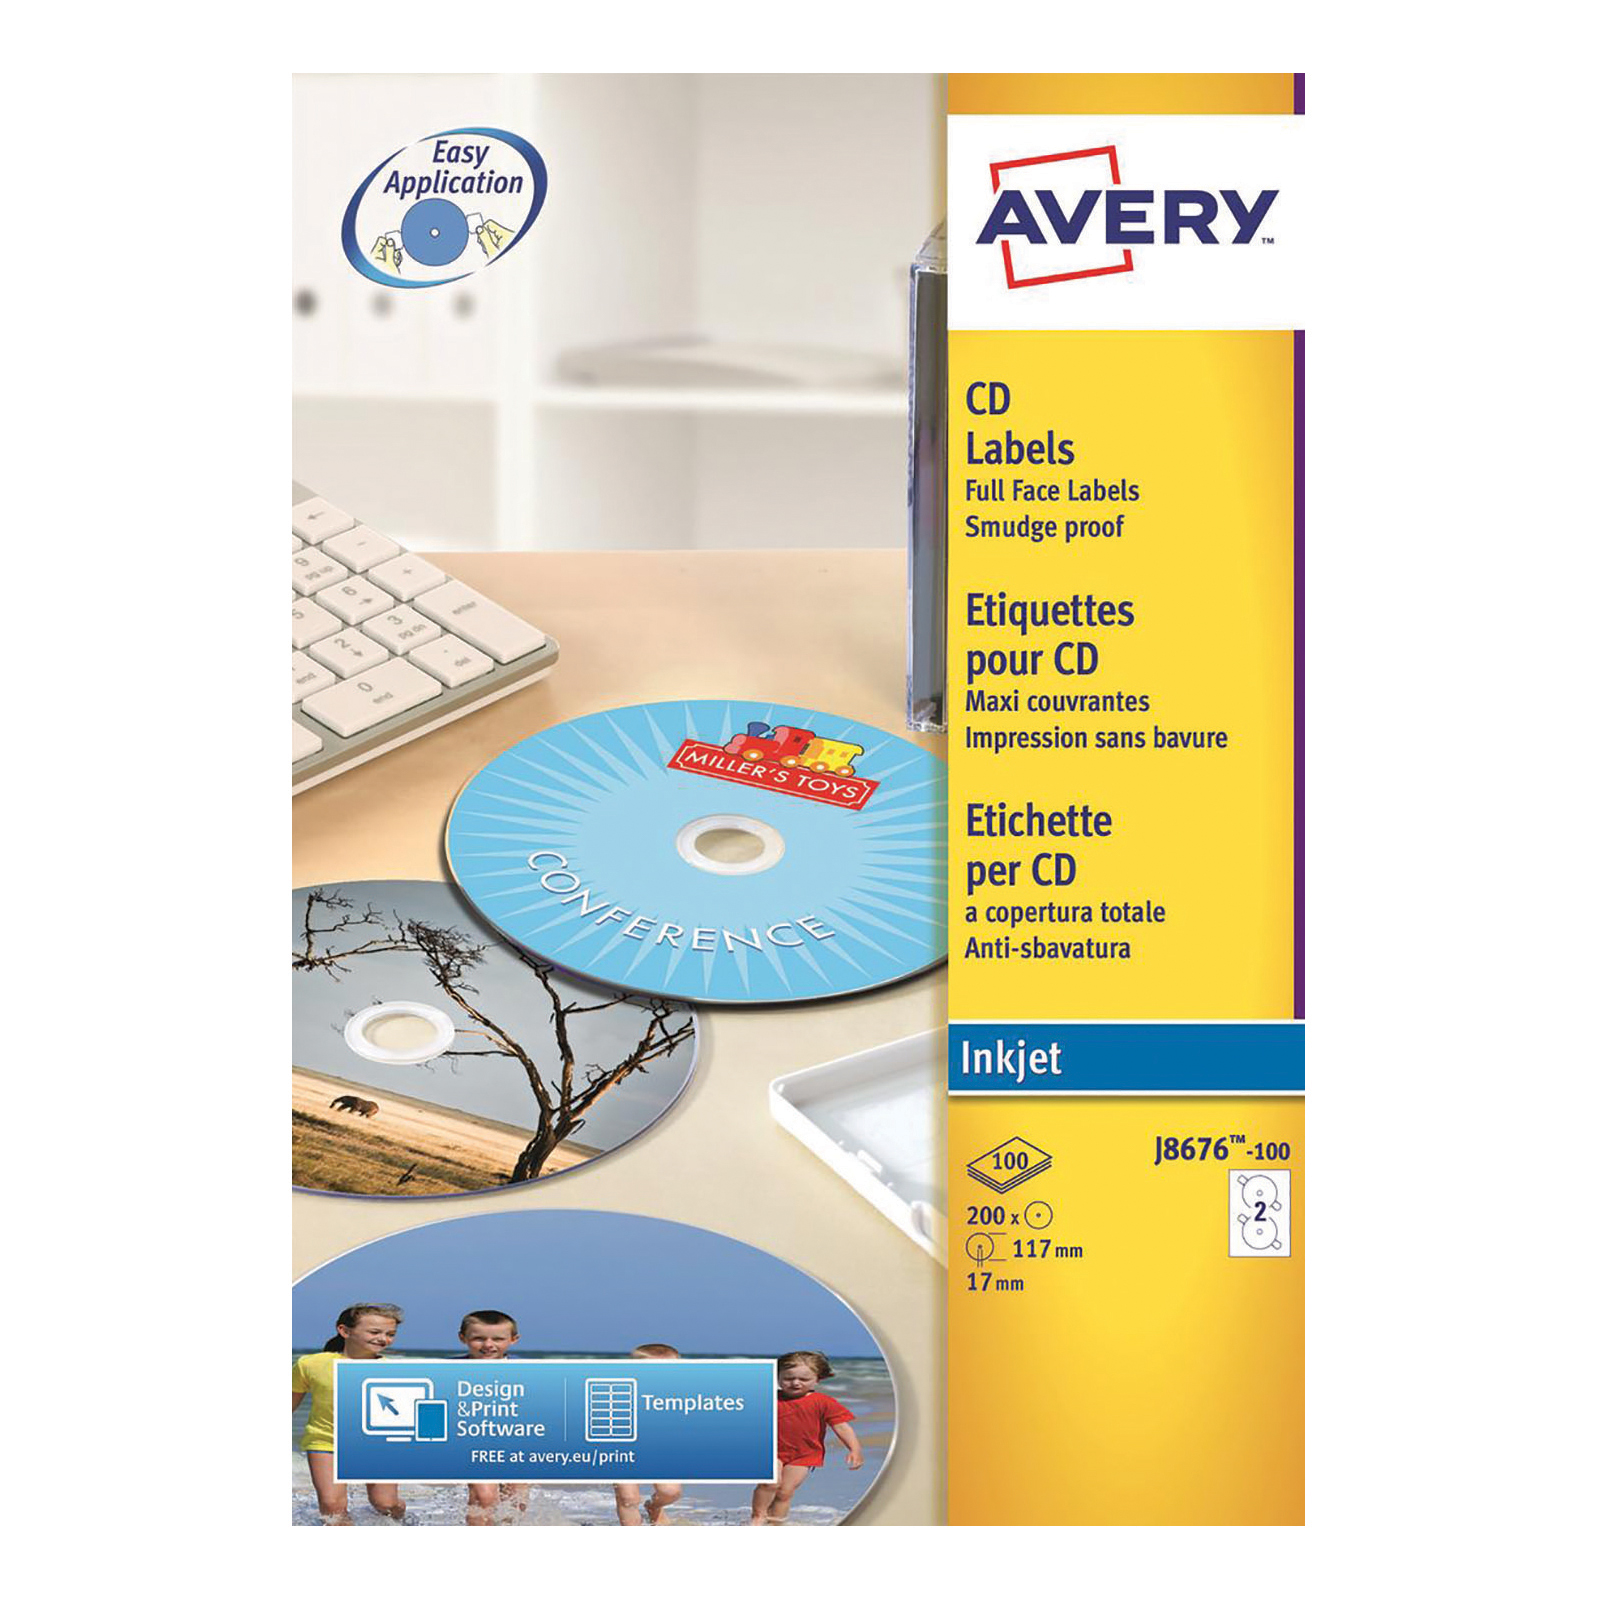 Filing / Media / Retail Avery CD/DVD Labels Inkjet 2 per Sheet Dia.117mm Easy Application White Ref J8676-100 200 Labels